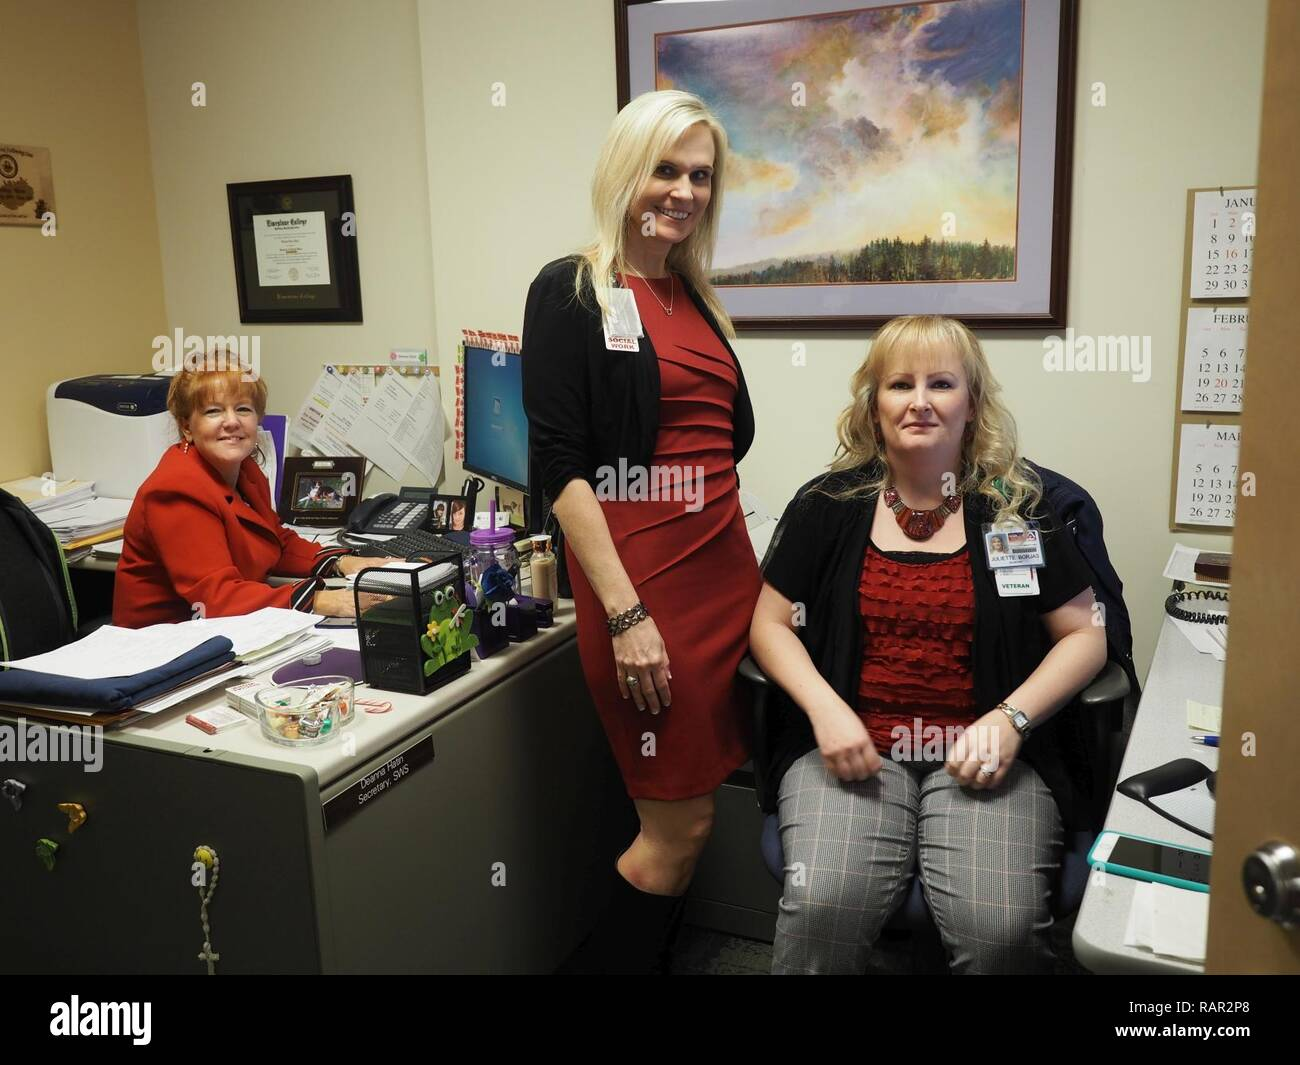 Social Work Services secretaries Deanna Hatin (left) and Juliette Borjas (right) are considered by chief of Social Work Services, Sherree Colvin (center) to be integral backbones of the Social Work department at Dorn VAMC. - Stock Image